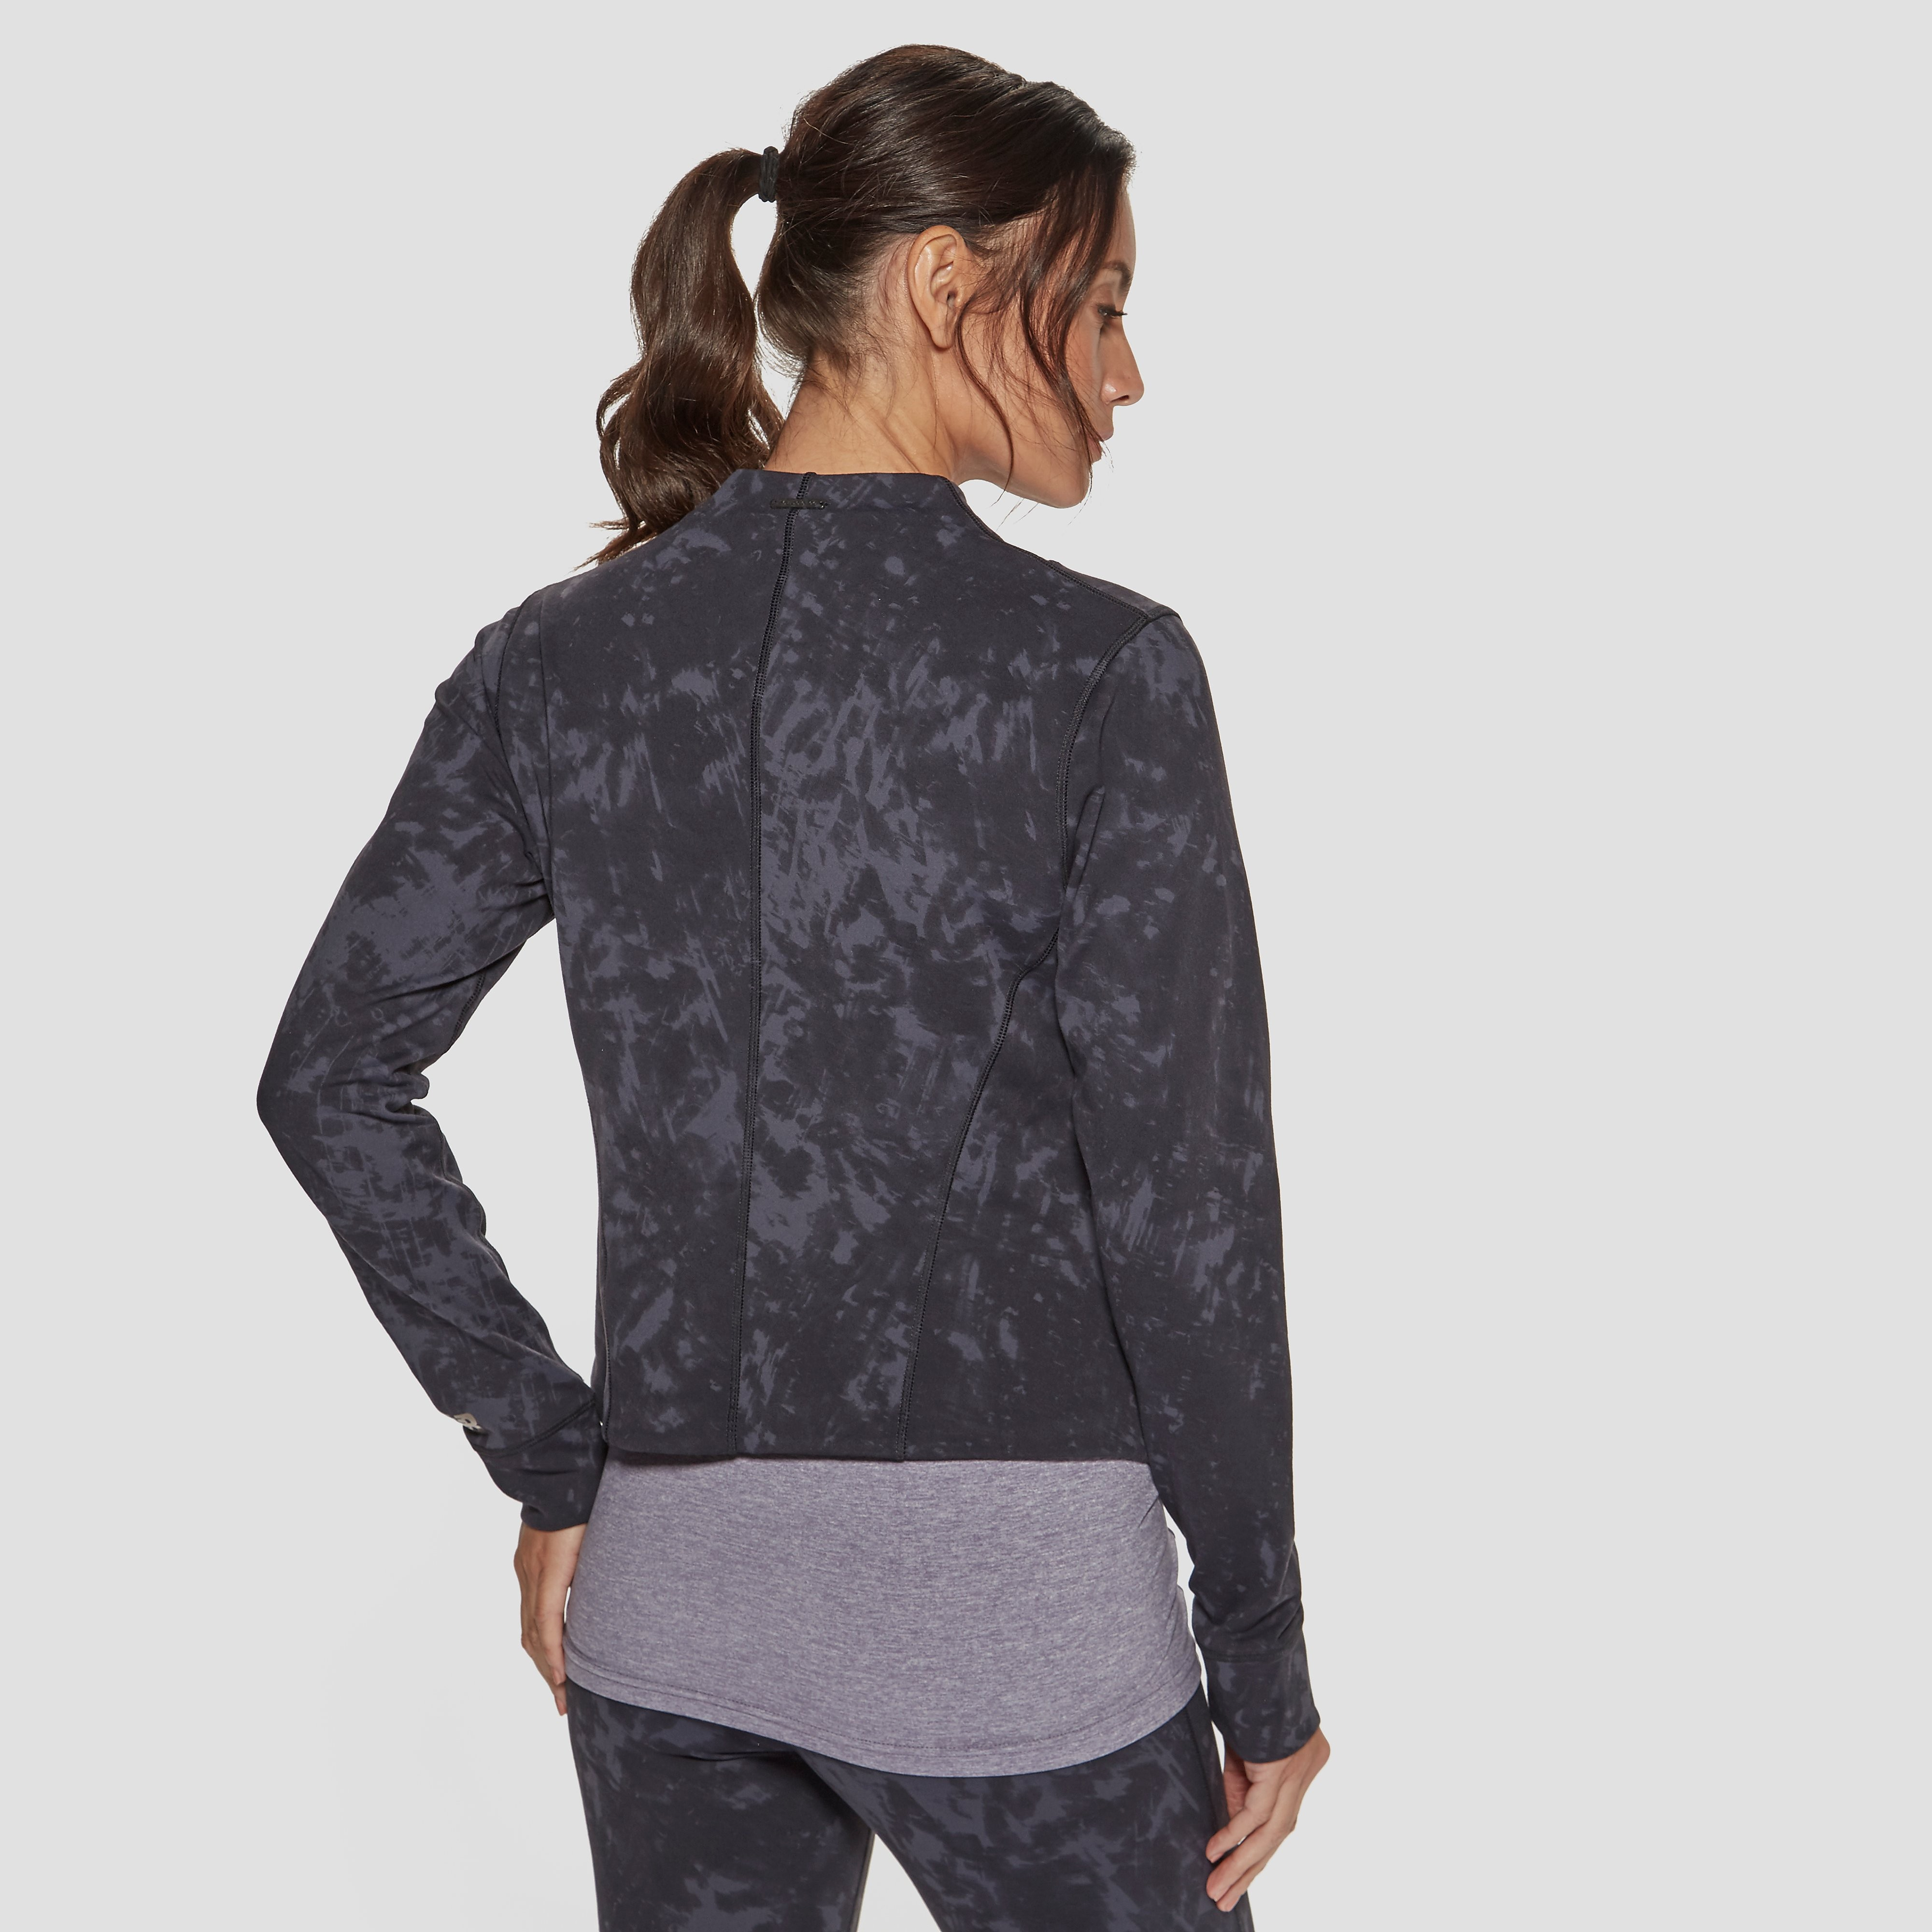 New Balance Women's Printed Bomber Jacket